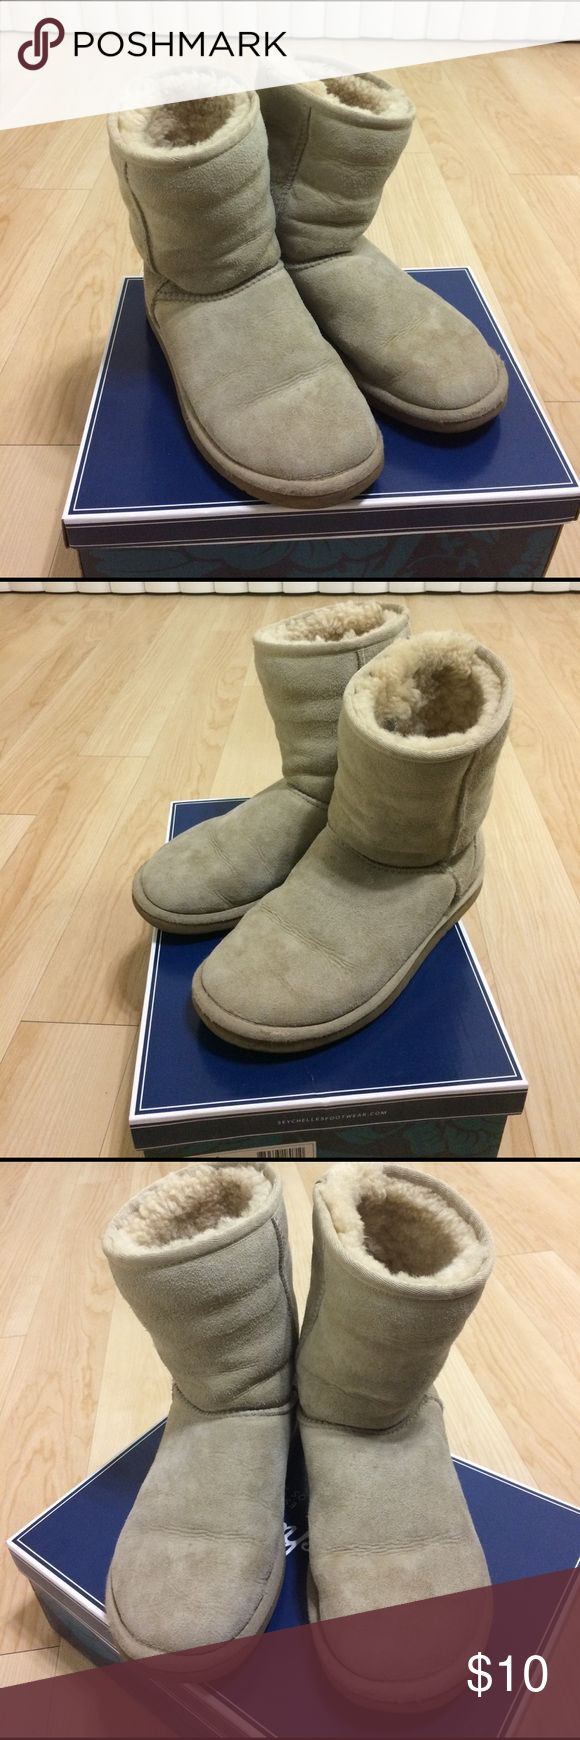 UGG Classic Short Boots UGG Classic Short Boots. Color is Sand. These boots have been through rain and snow, so the exterior is definitely not like new! ☔️☃️❄️ However, it is definitely still wearable! UGG Shoes Winter & Rain Boots